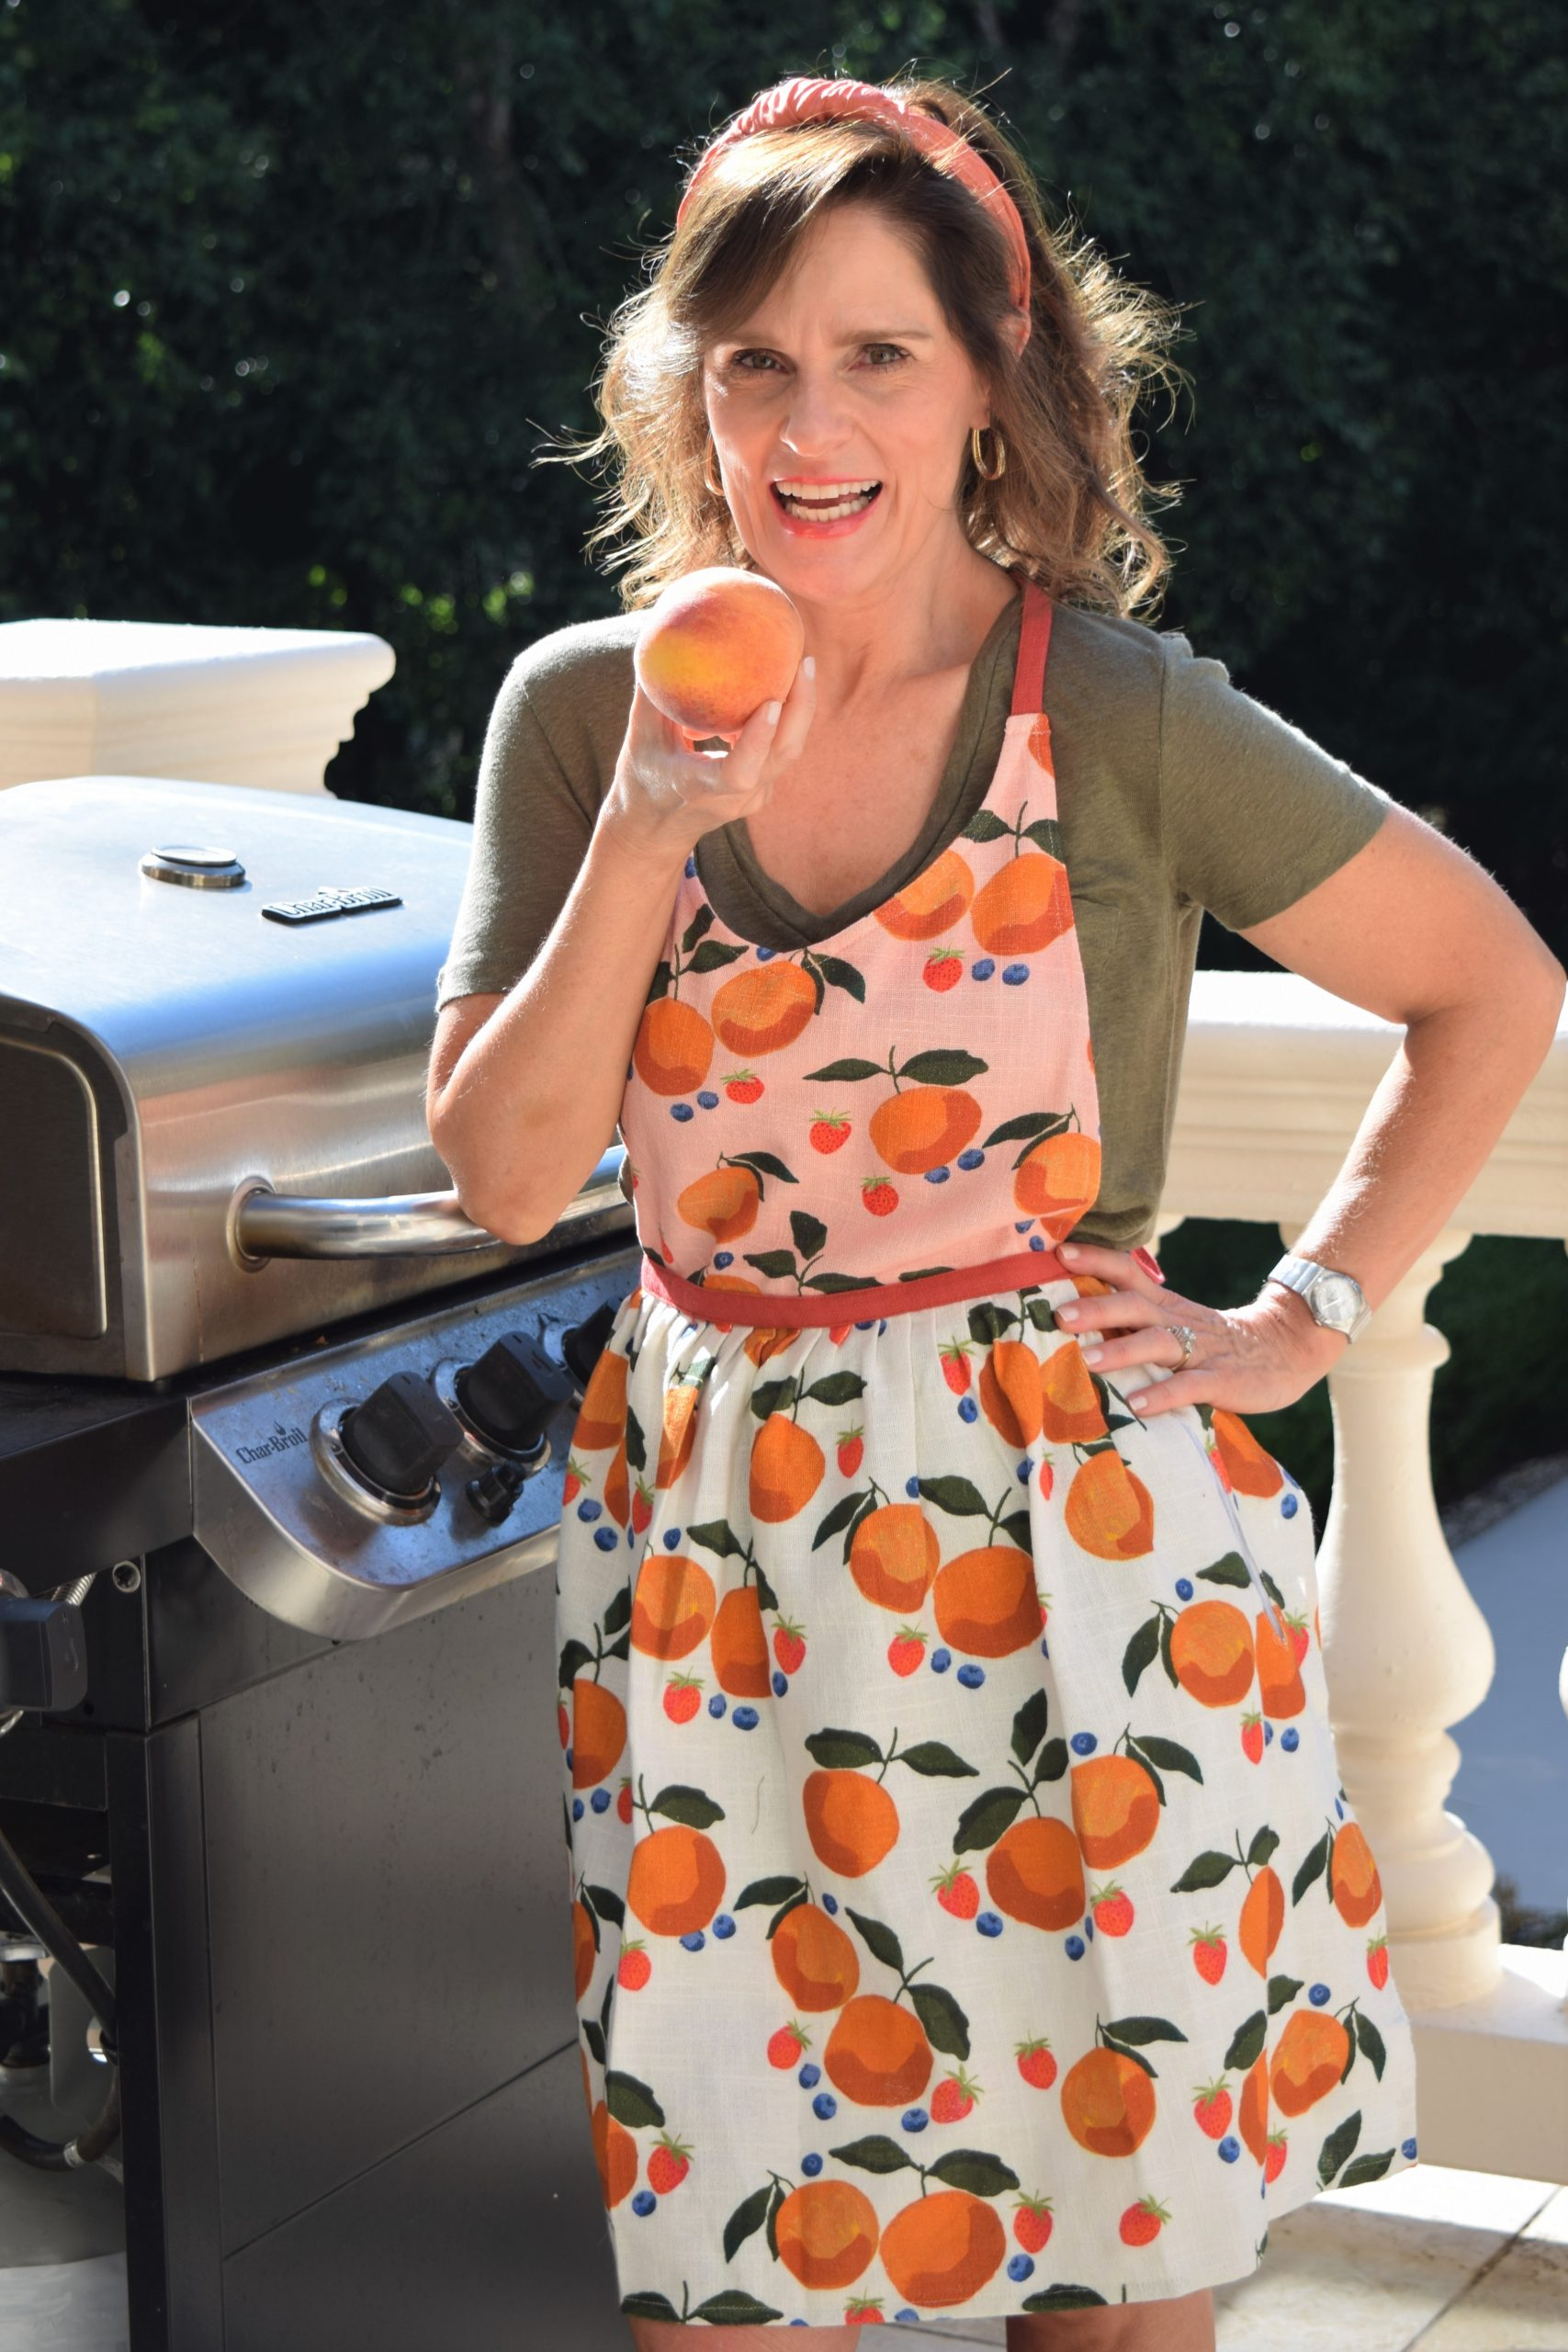 brunette woman over 50 standing in front of a grill wearing a retro style apron with peaches on it and holding a peach up to her mouth